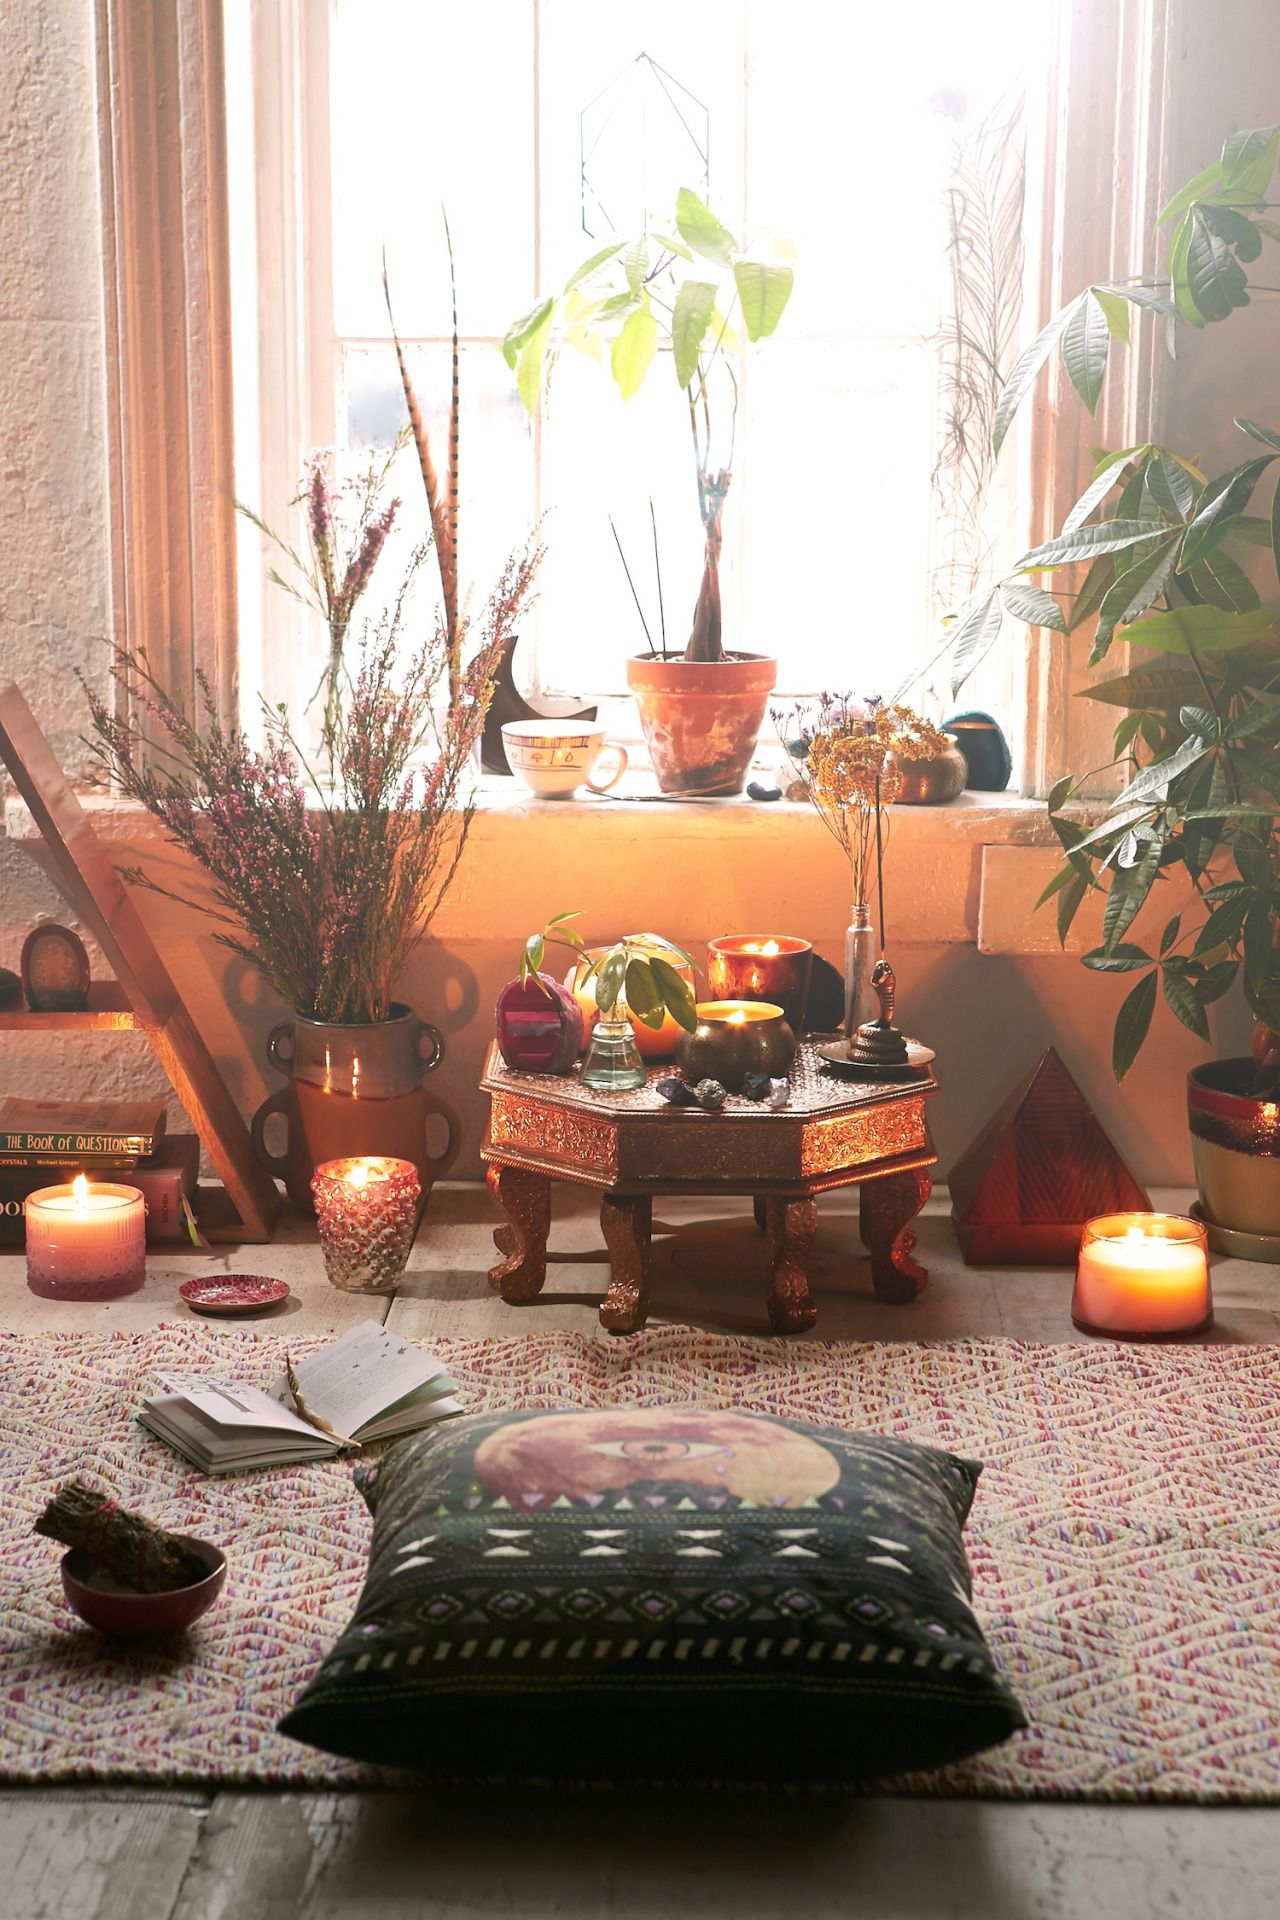 50 meditation room ideas that will improve your life - Meditation Room